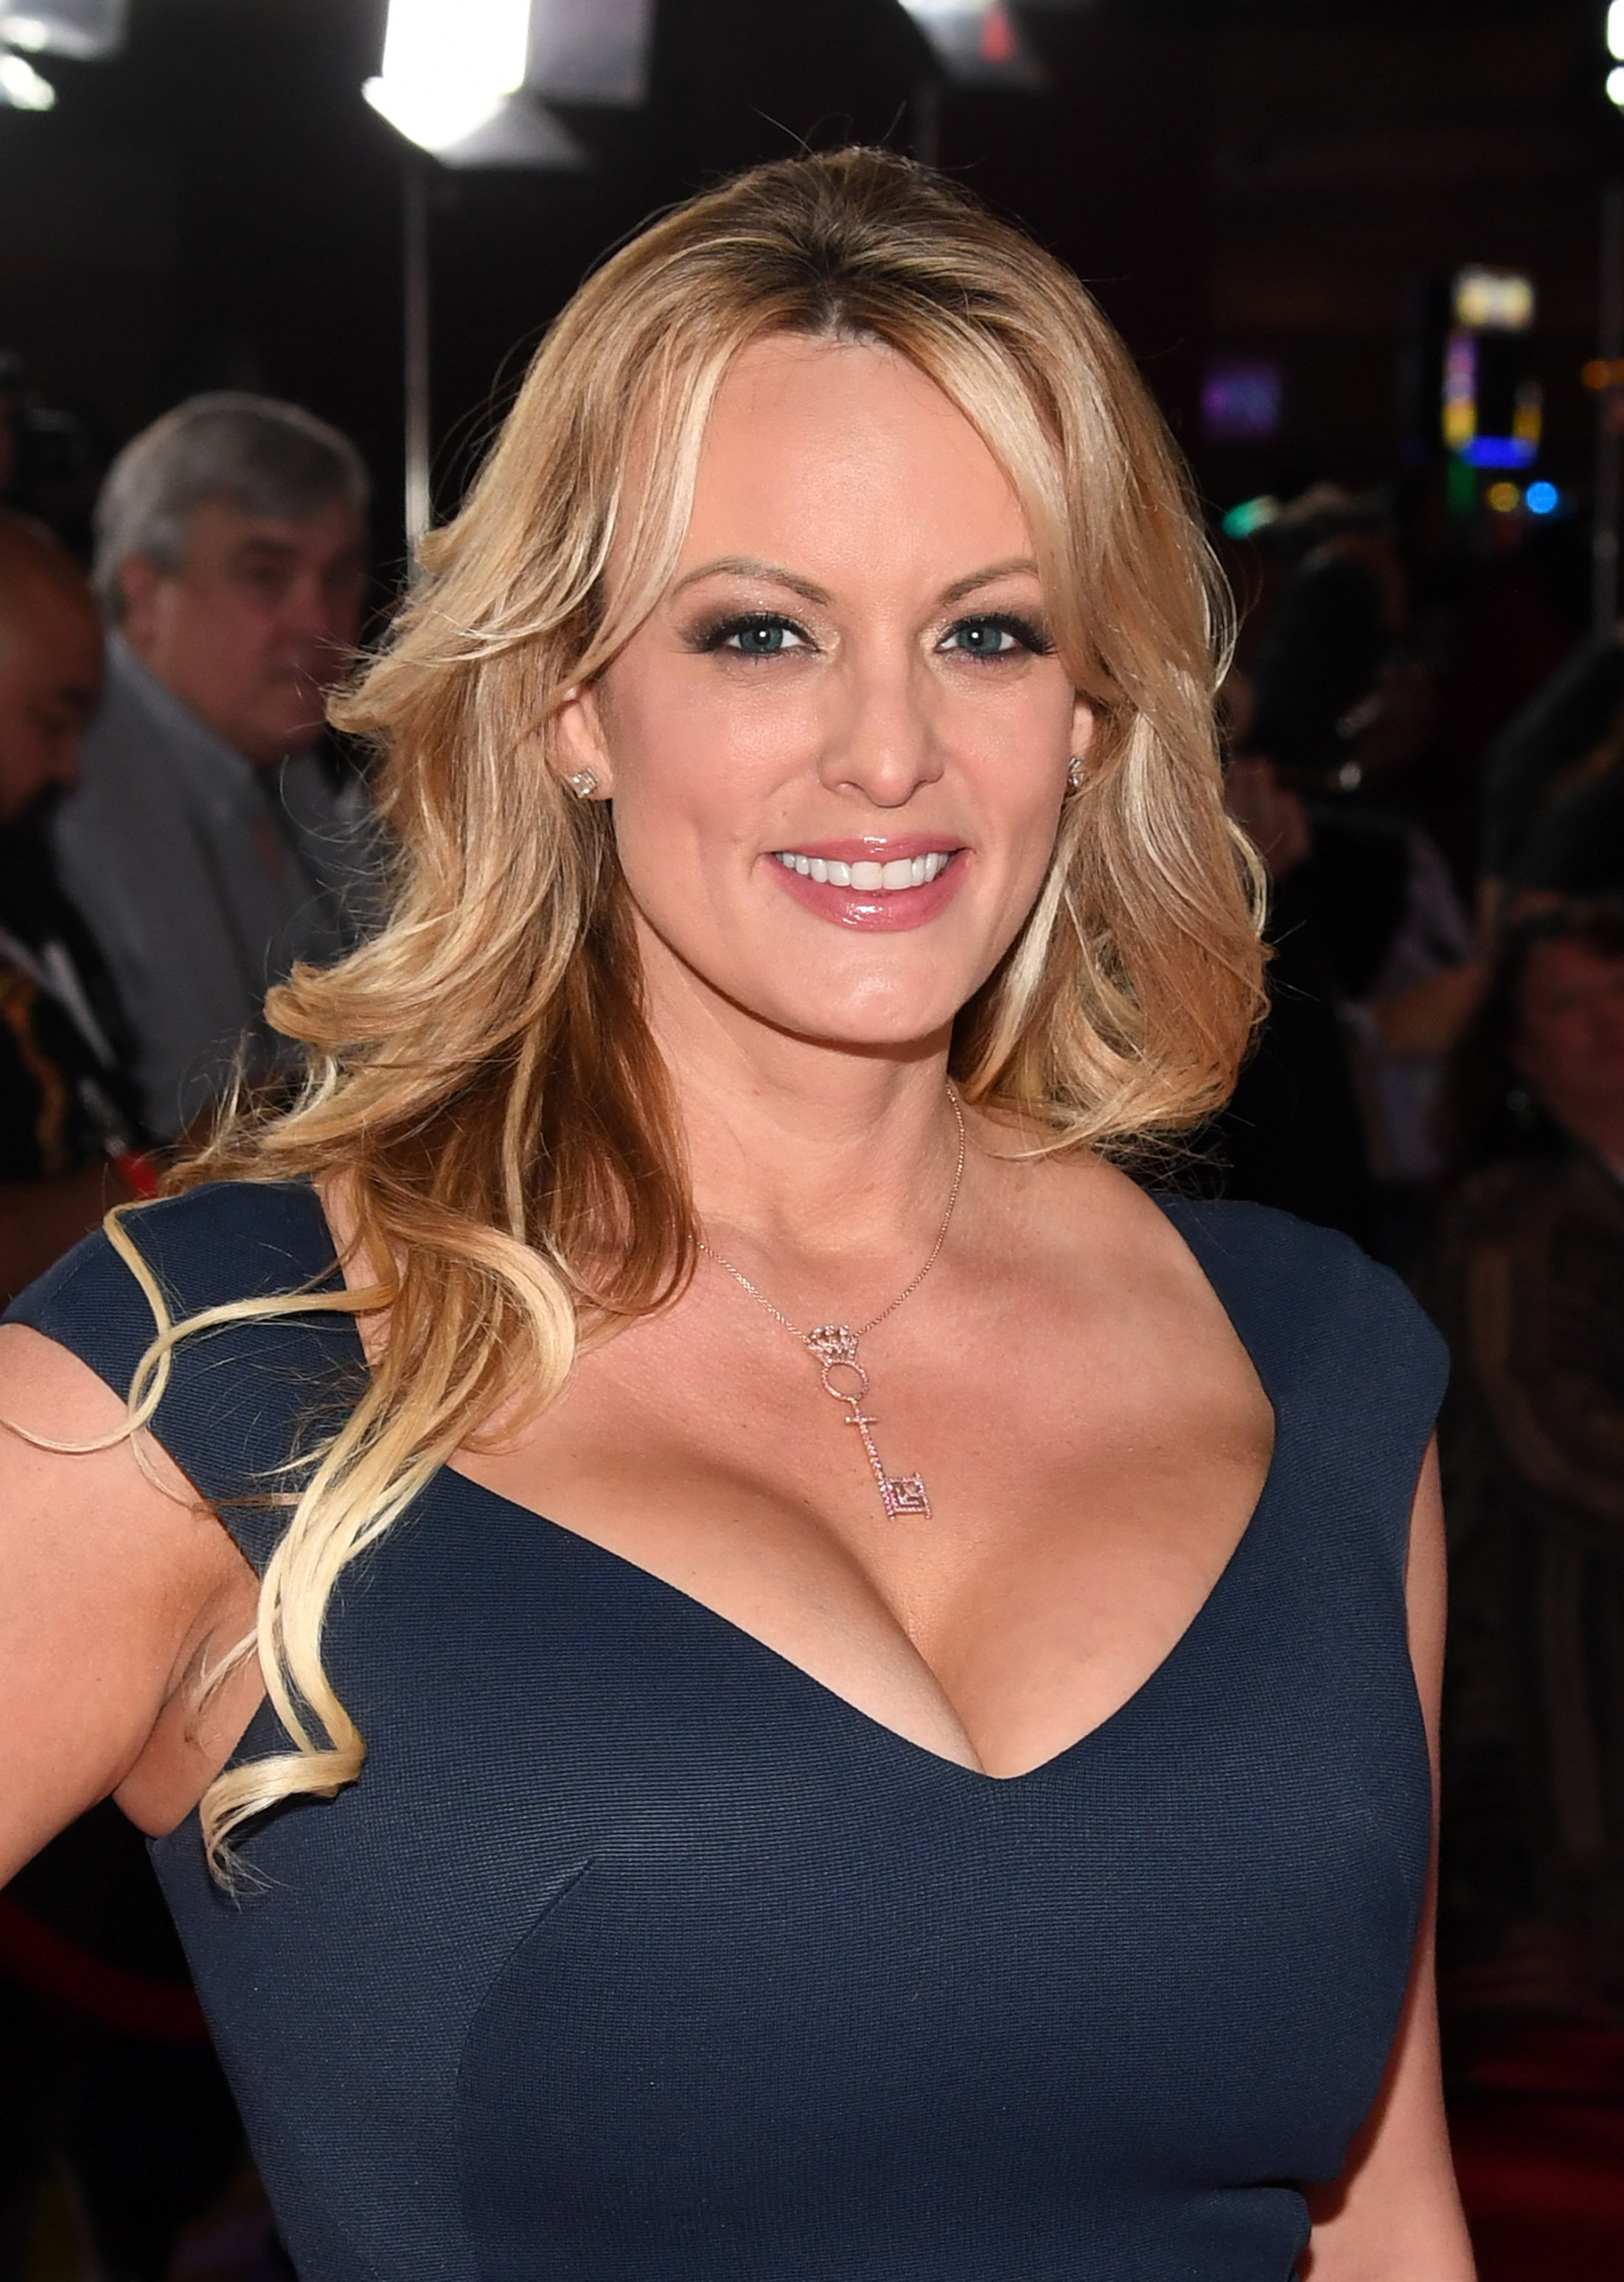 Stormy Daniels attending the 2019 Adult Video News Awards at the Hard Rock Hotel & Casino in Las Vegas | Photo: Getty Images